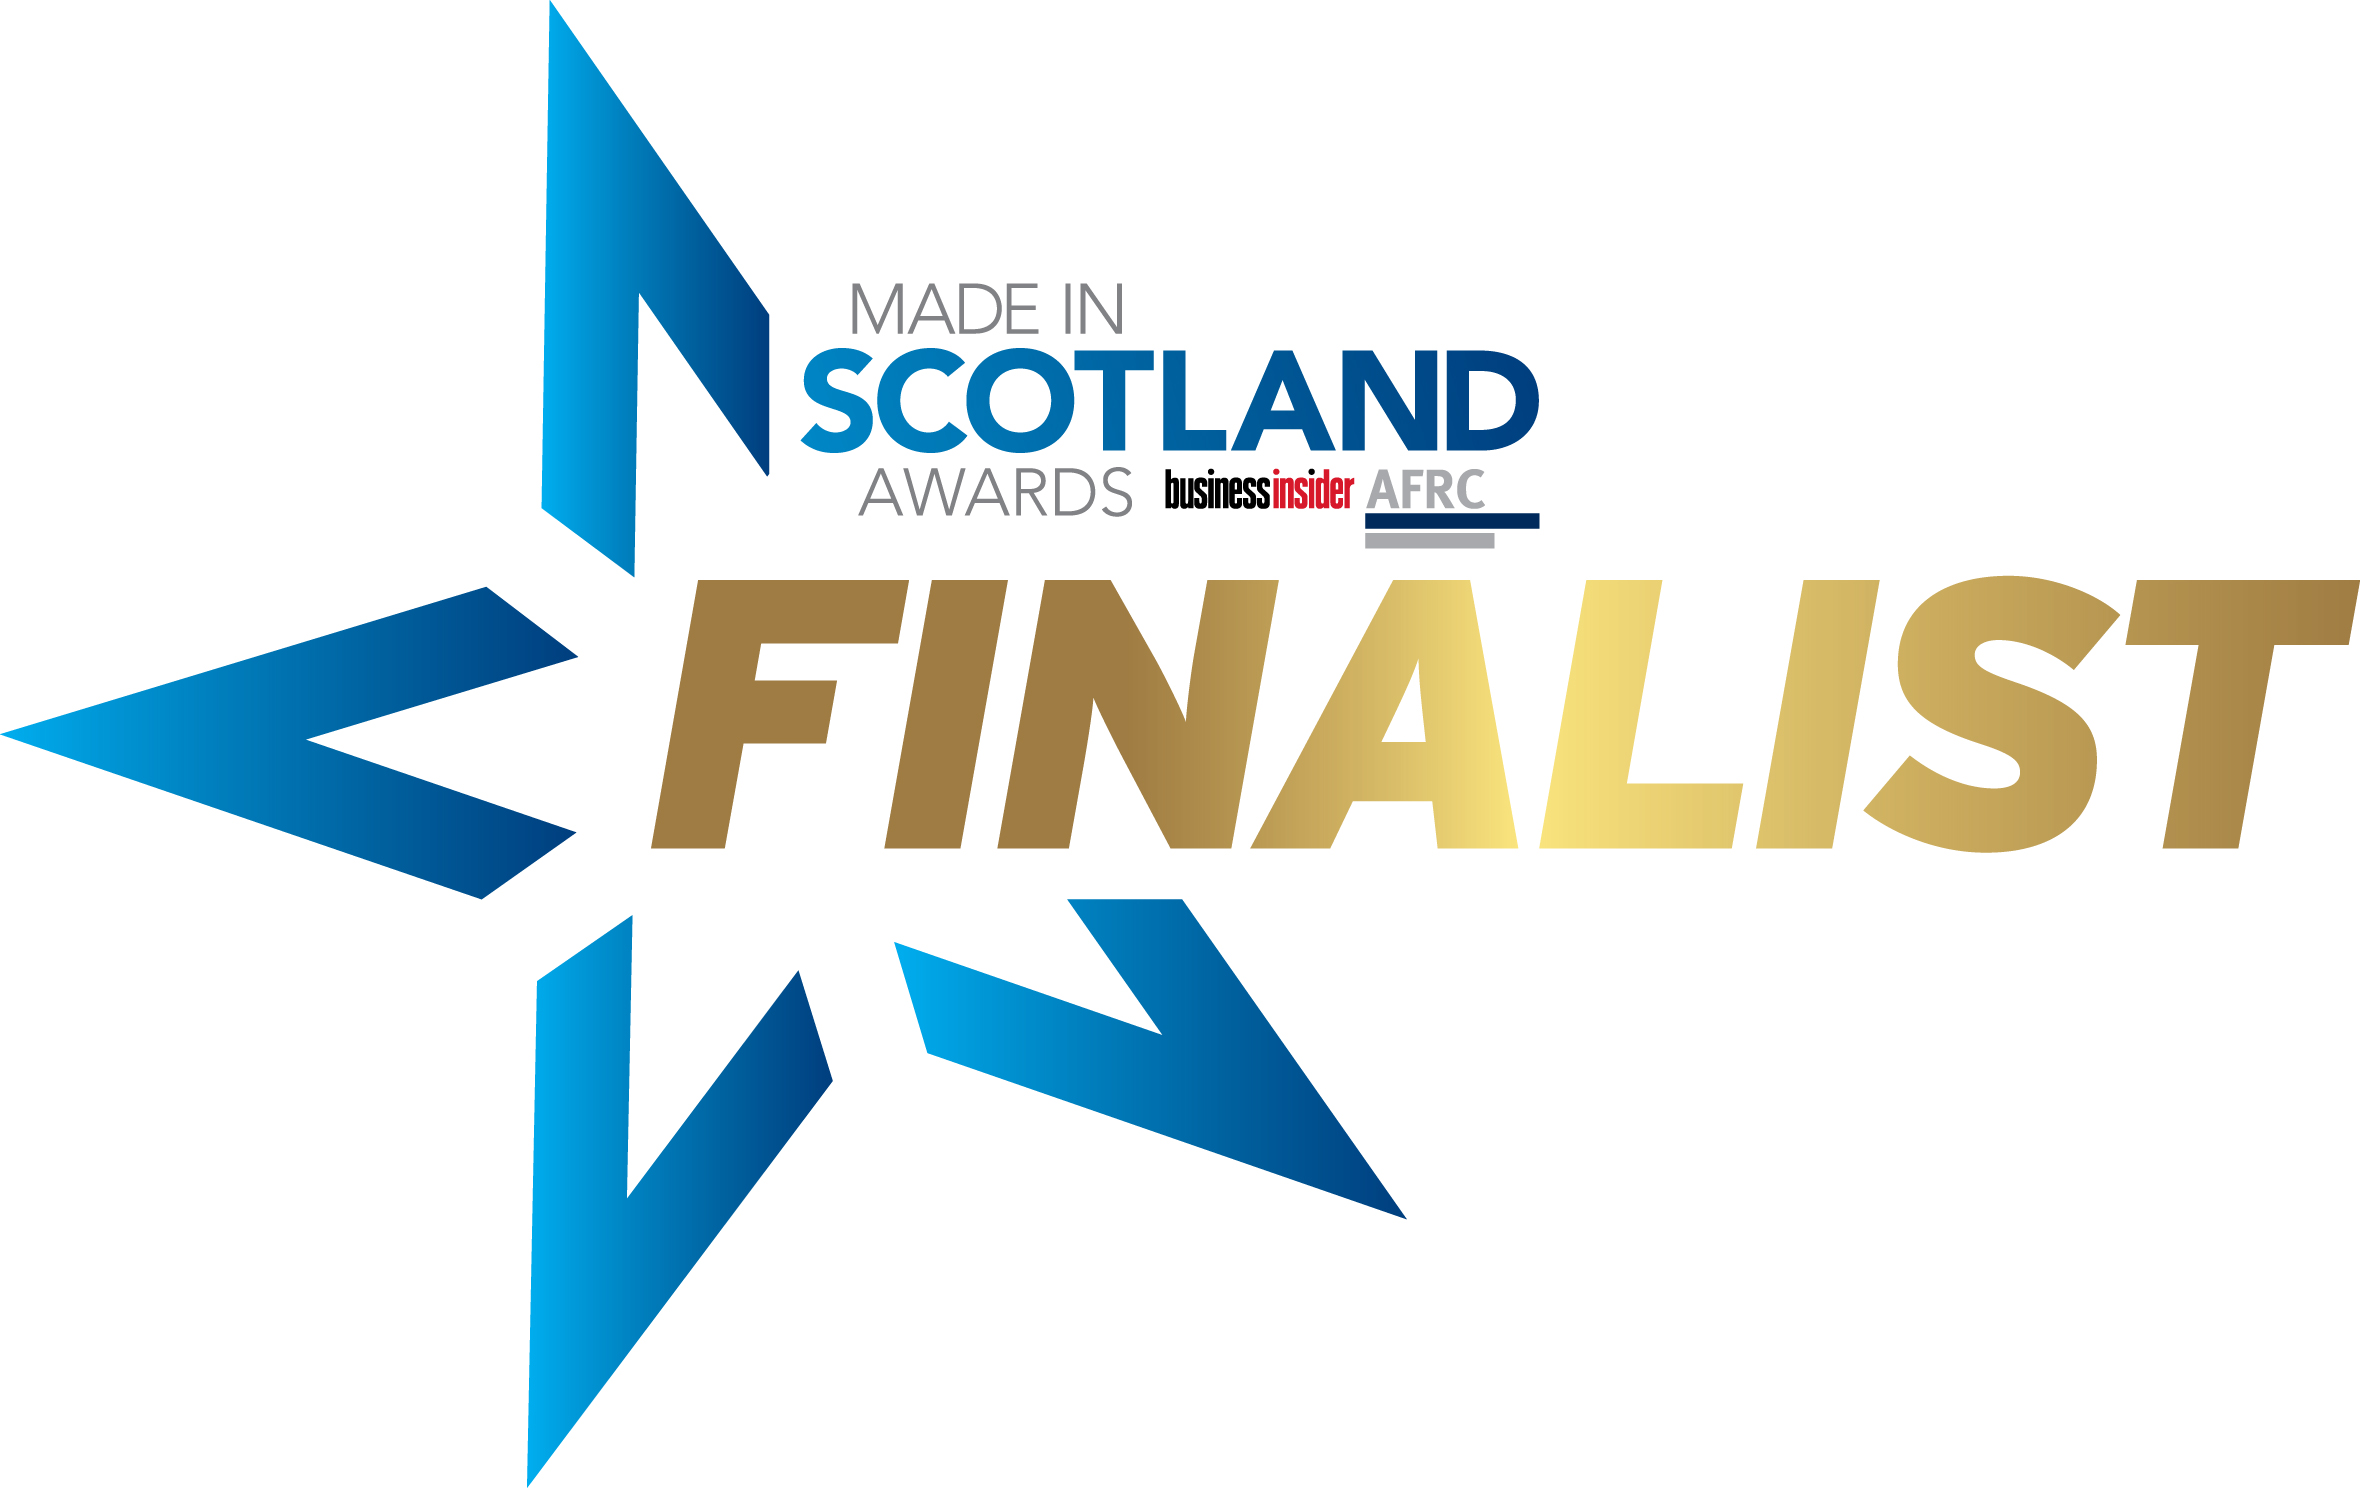 Made In Scotland Awards Finalists Announcement!